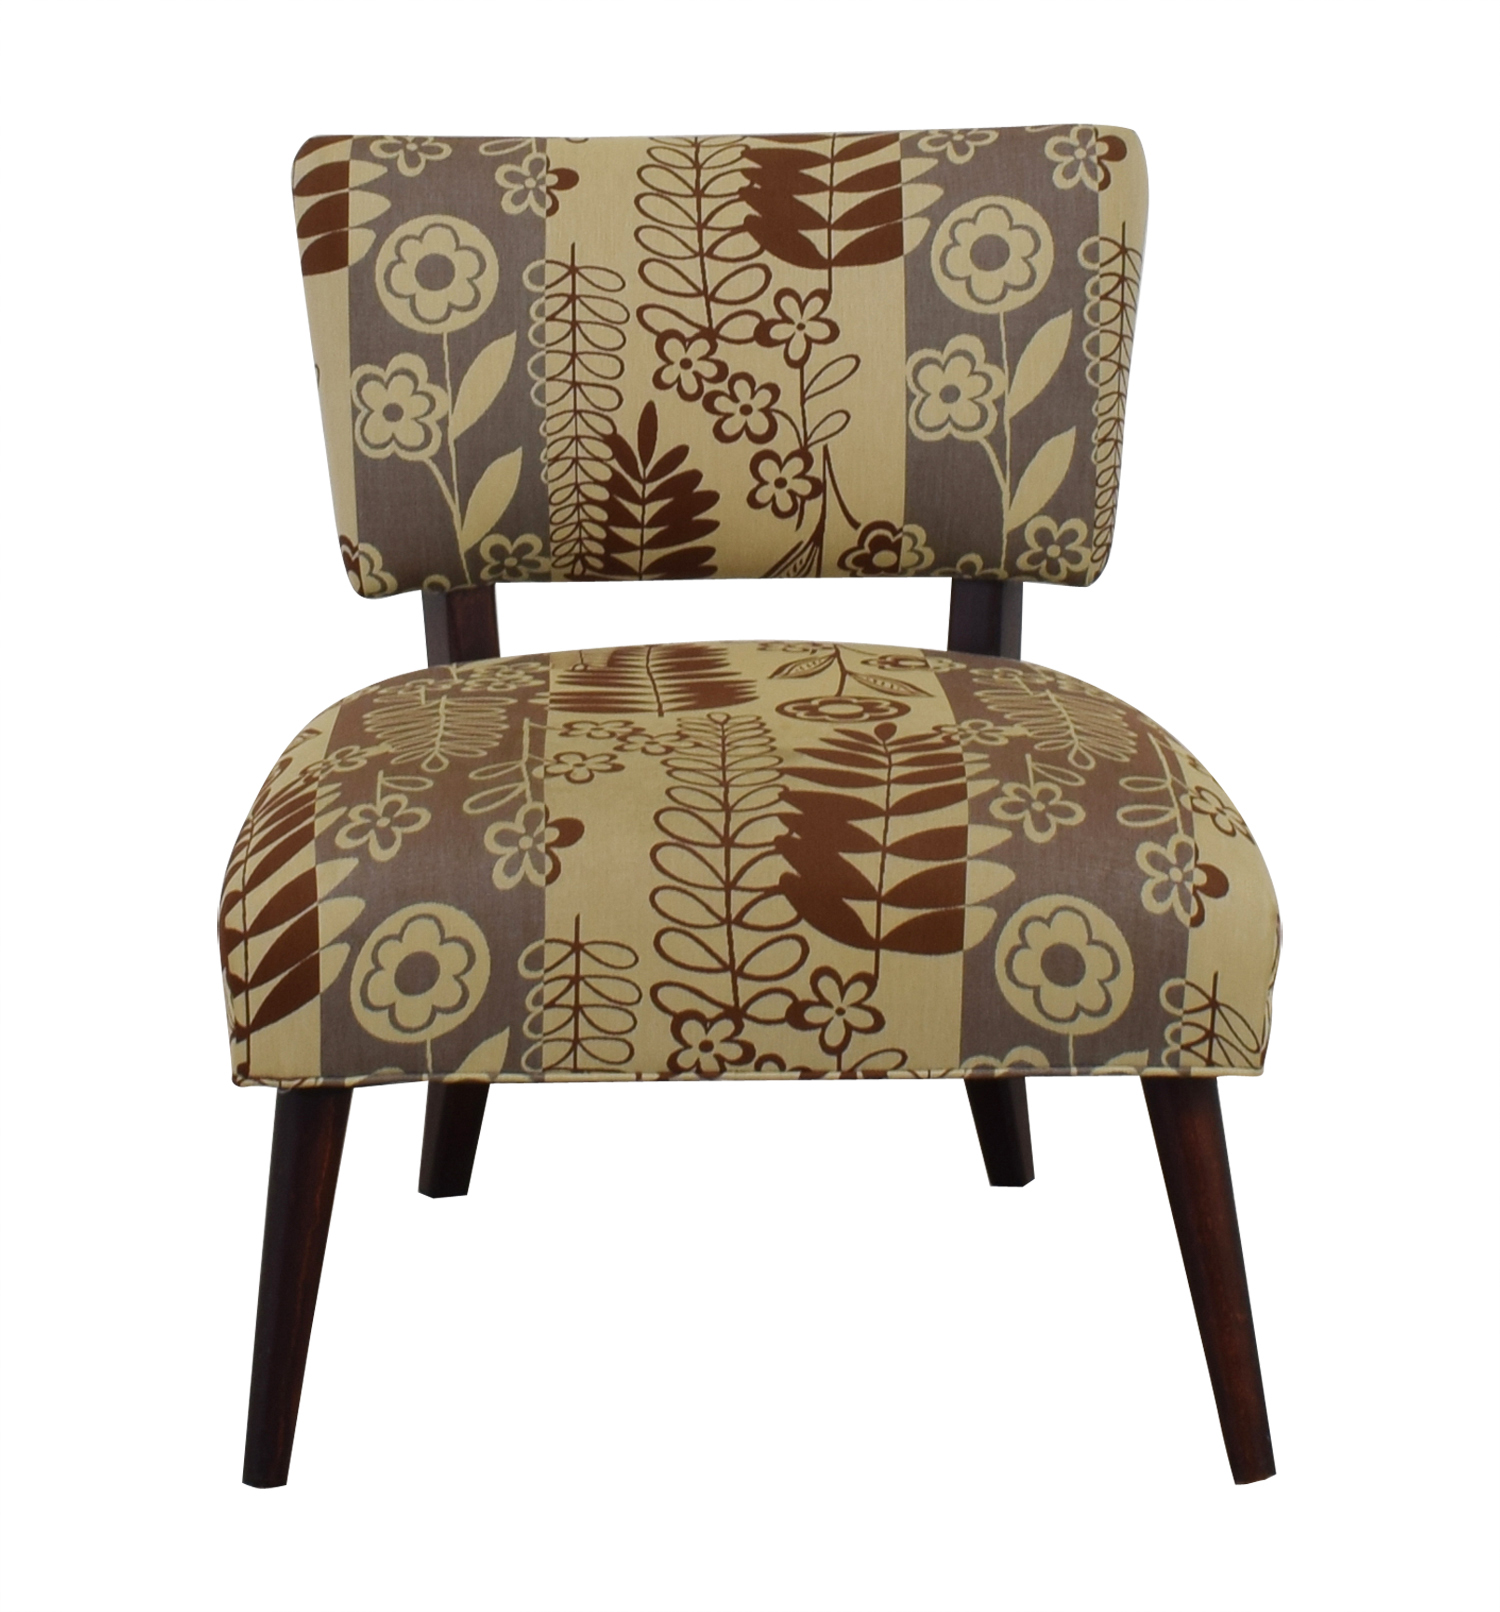 shop Beige Multi-Colored Floral Upholstered Chair  Sofas